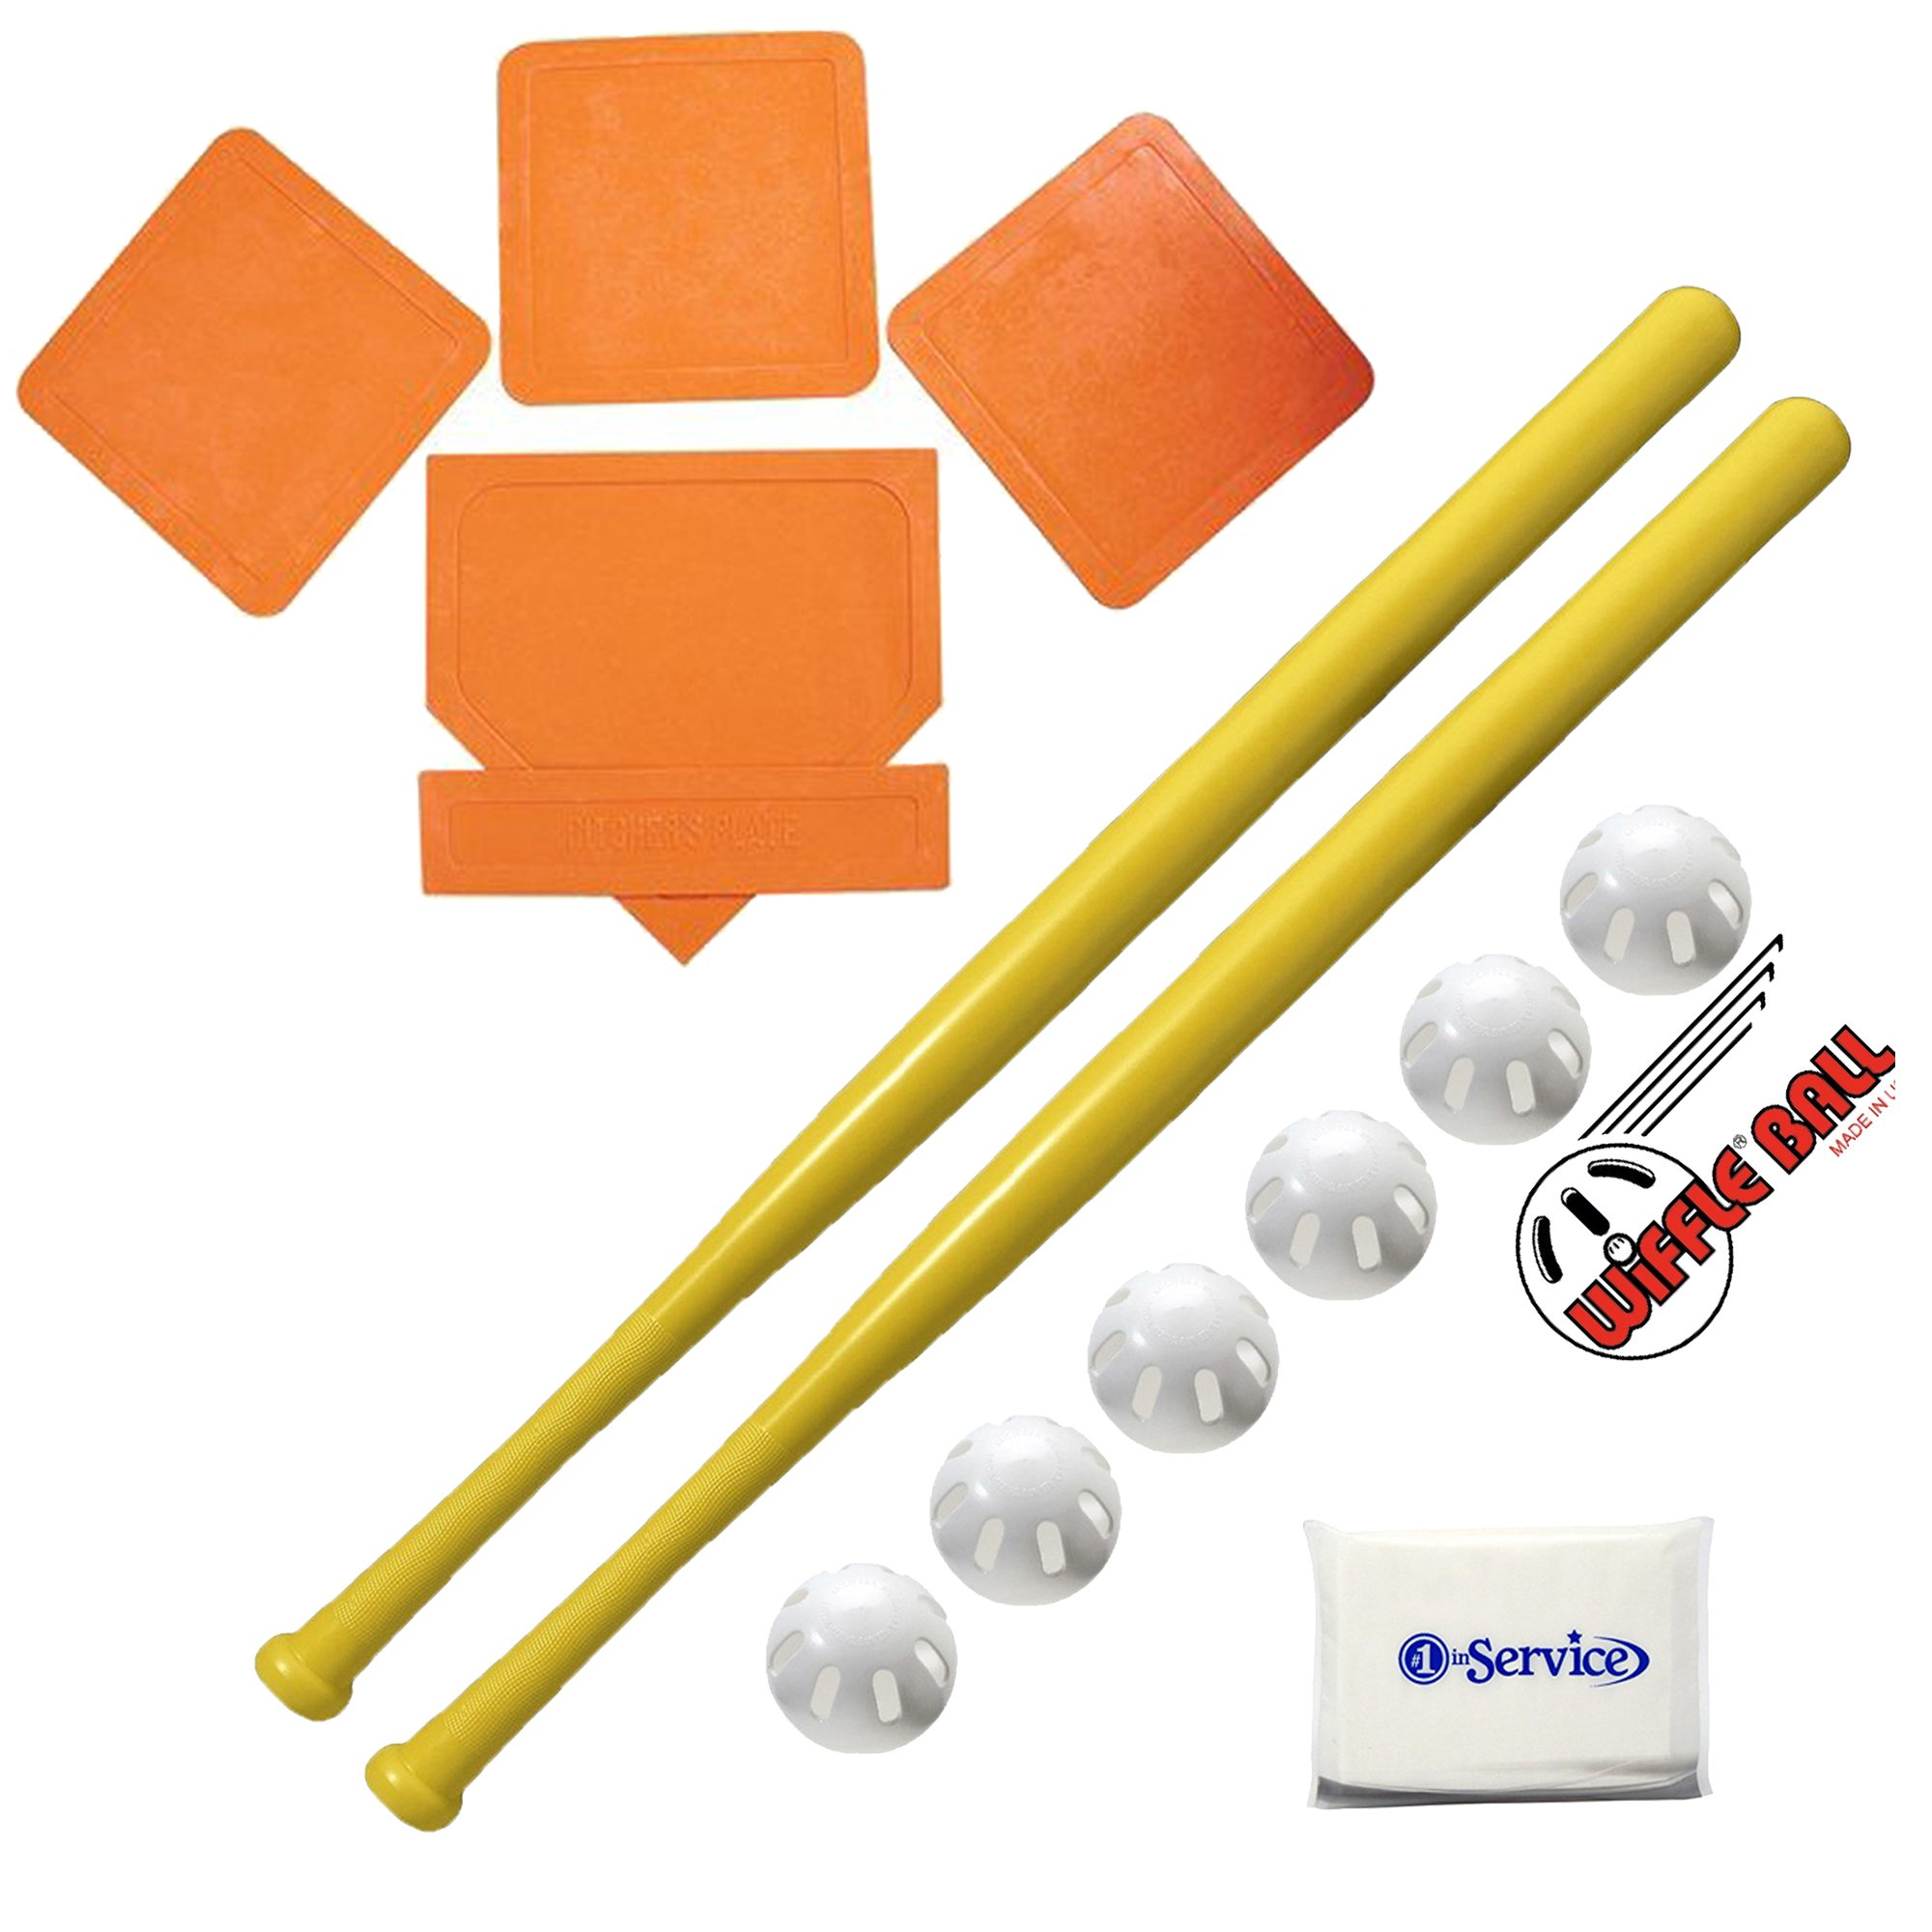 Wiffle Ball 6 Baseballs Official Size - 6 Pack and Wiffle Ball 32'' Bats 2 Pack, BSN Orange Throw Down Bases (5 Piece), Gift Set Bundle + Bonus NOIS Tissue Pack by WIFFLE